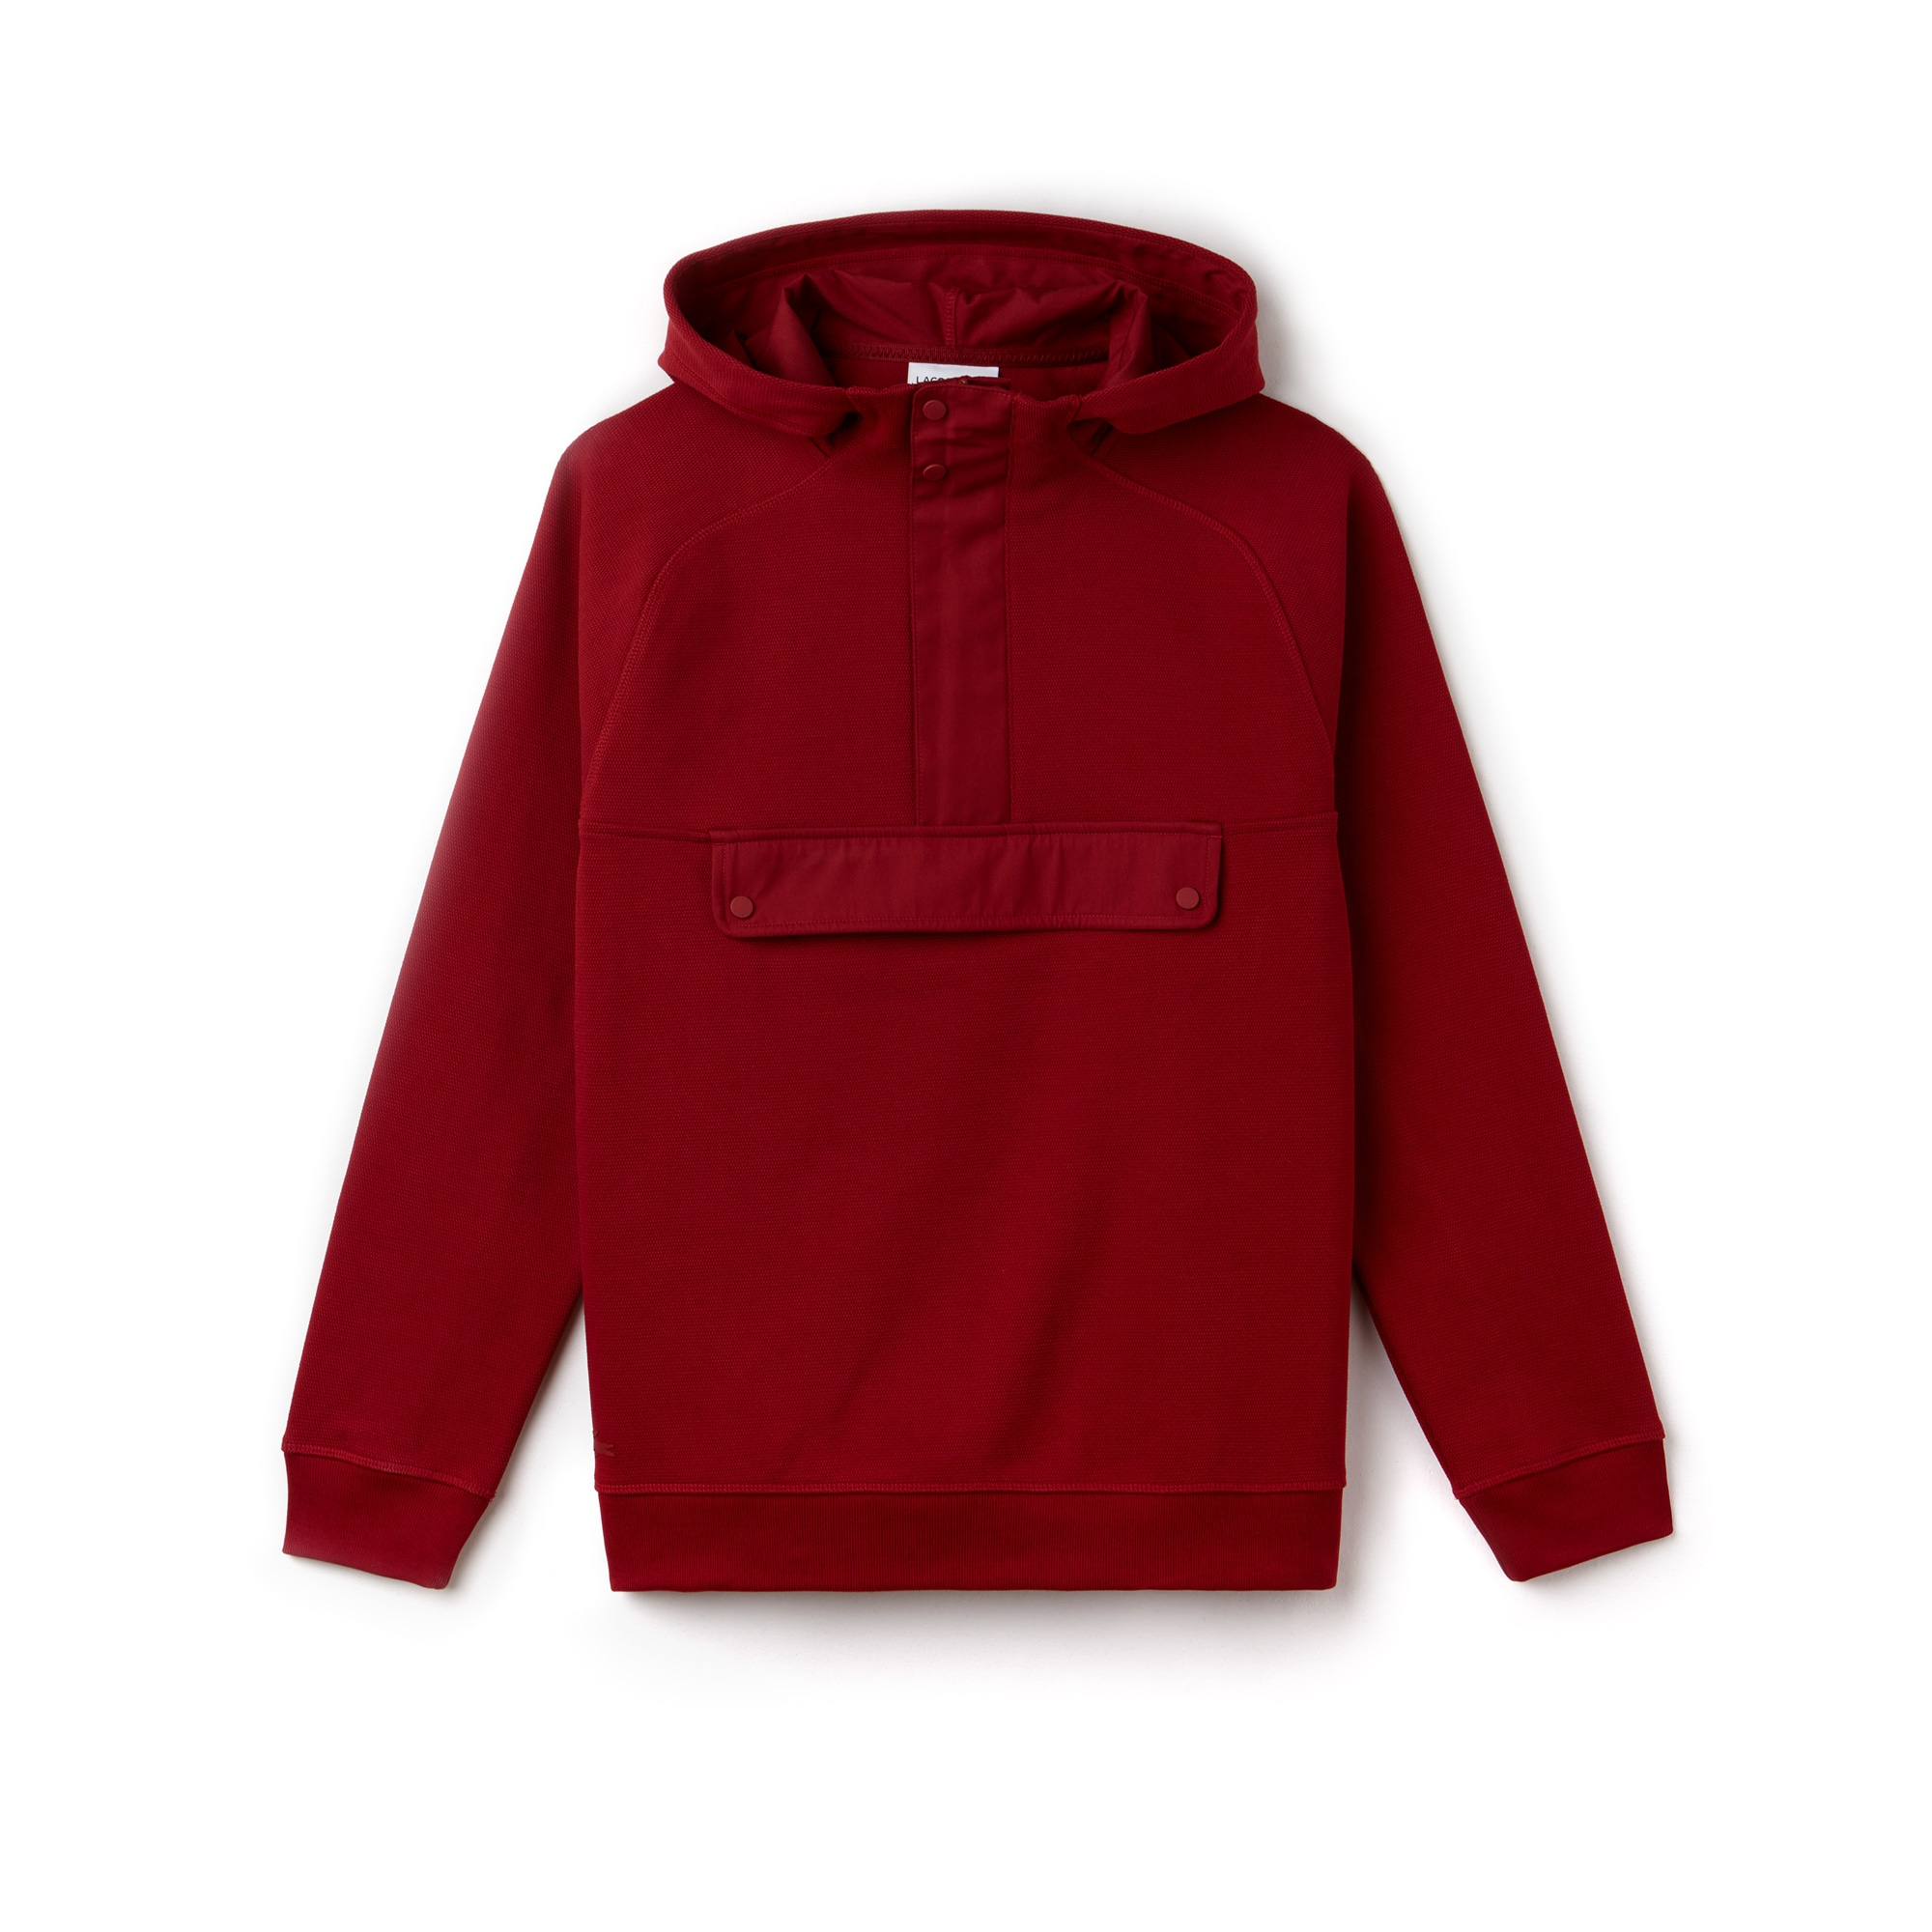 Men's Hooded Jacquard Piqué Sweatshirt